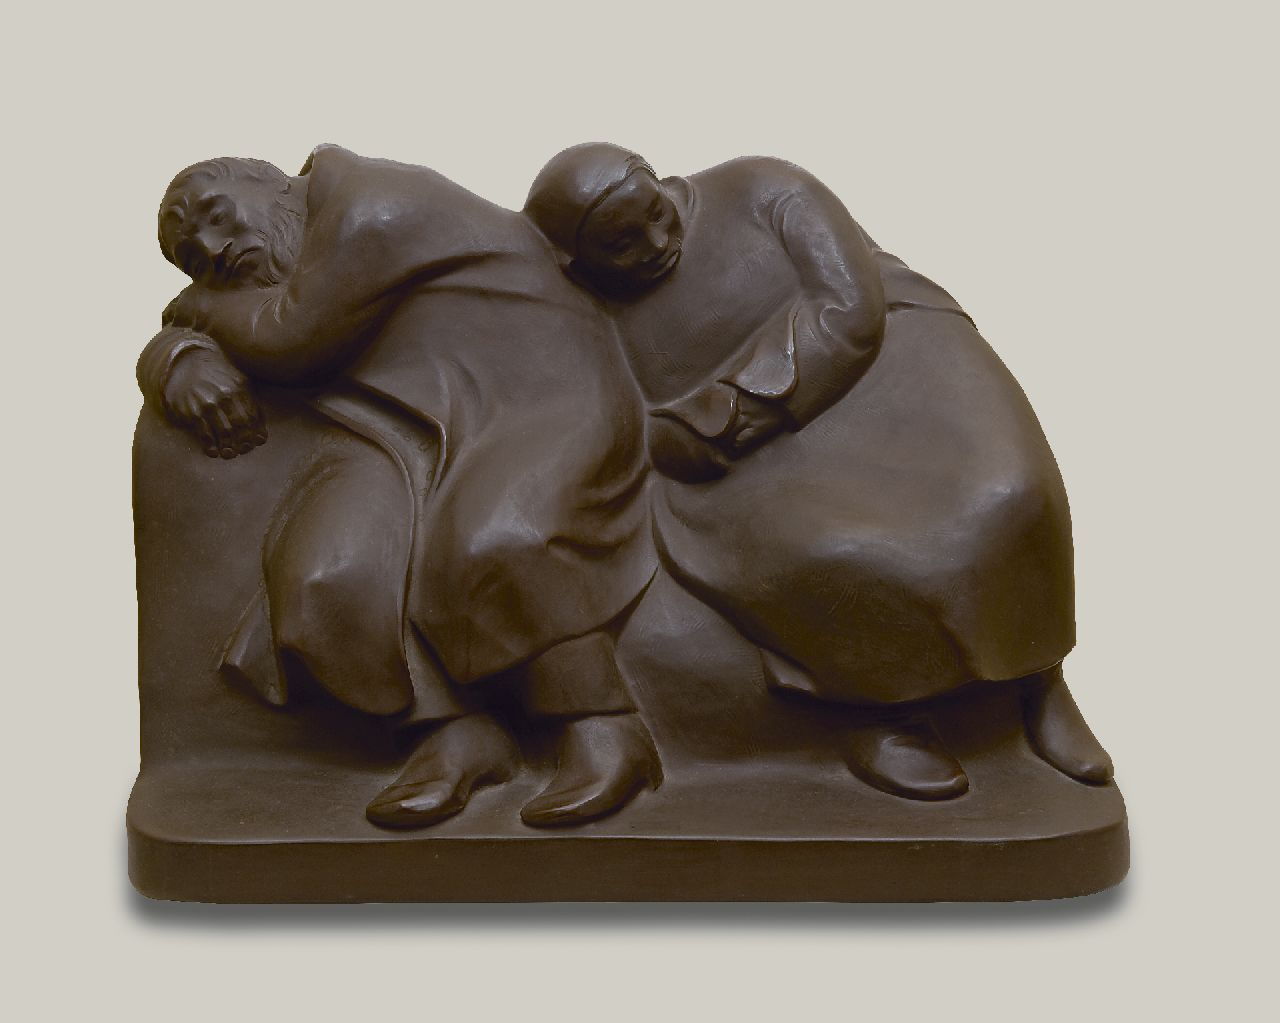 Ernst Barlach | Sleepings vagabonds (Sleeping farmer and his wife), Böttger-stoneware, 29.8 x 41.0 cm, signed with signature stamp on the side and executed 1956